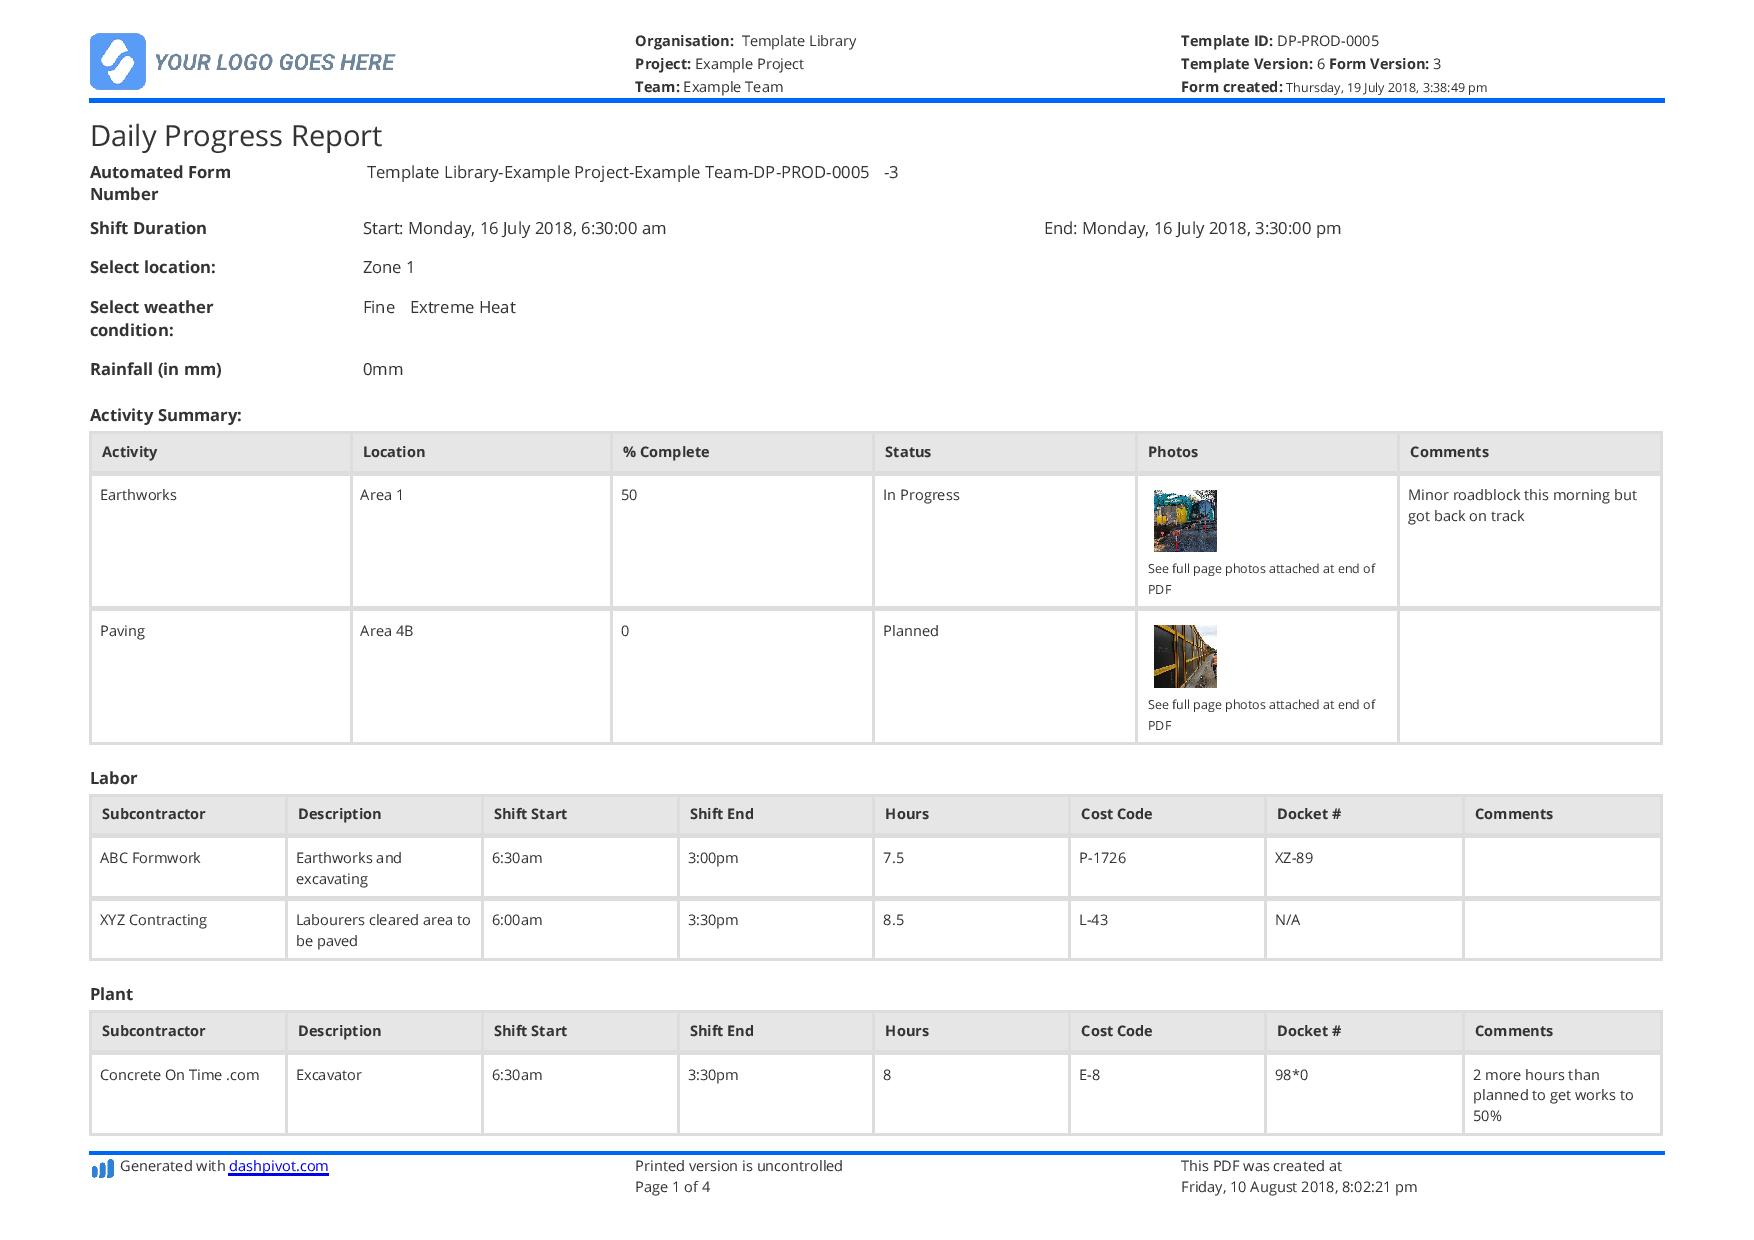 Sample Of Daily Progress Report Format Excel Construction With Daily Progress Report Format Excel Construction Example